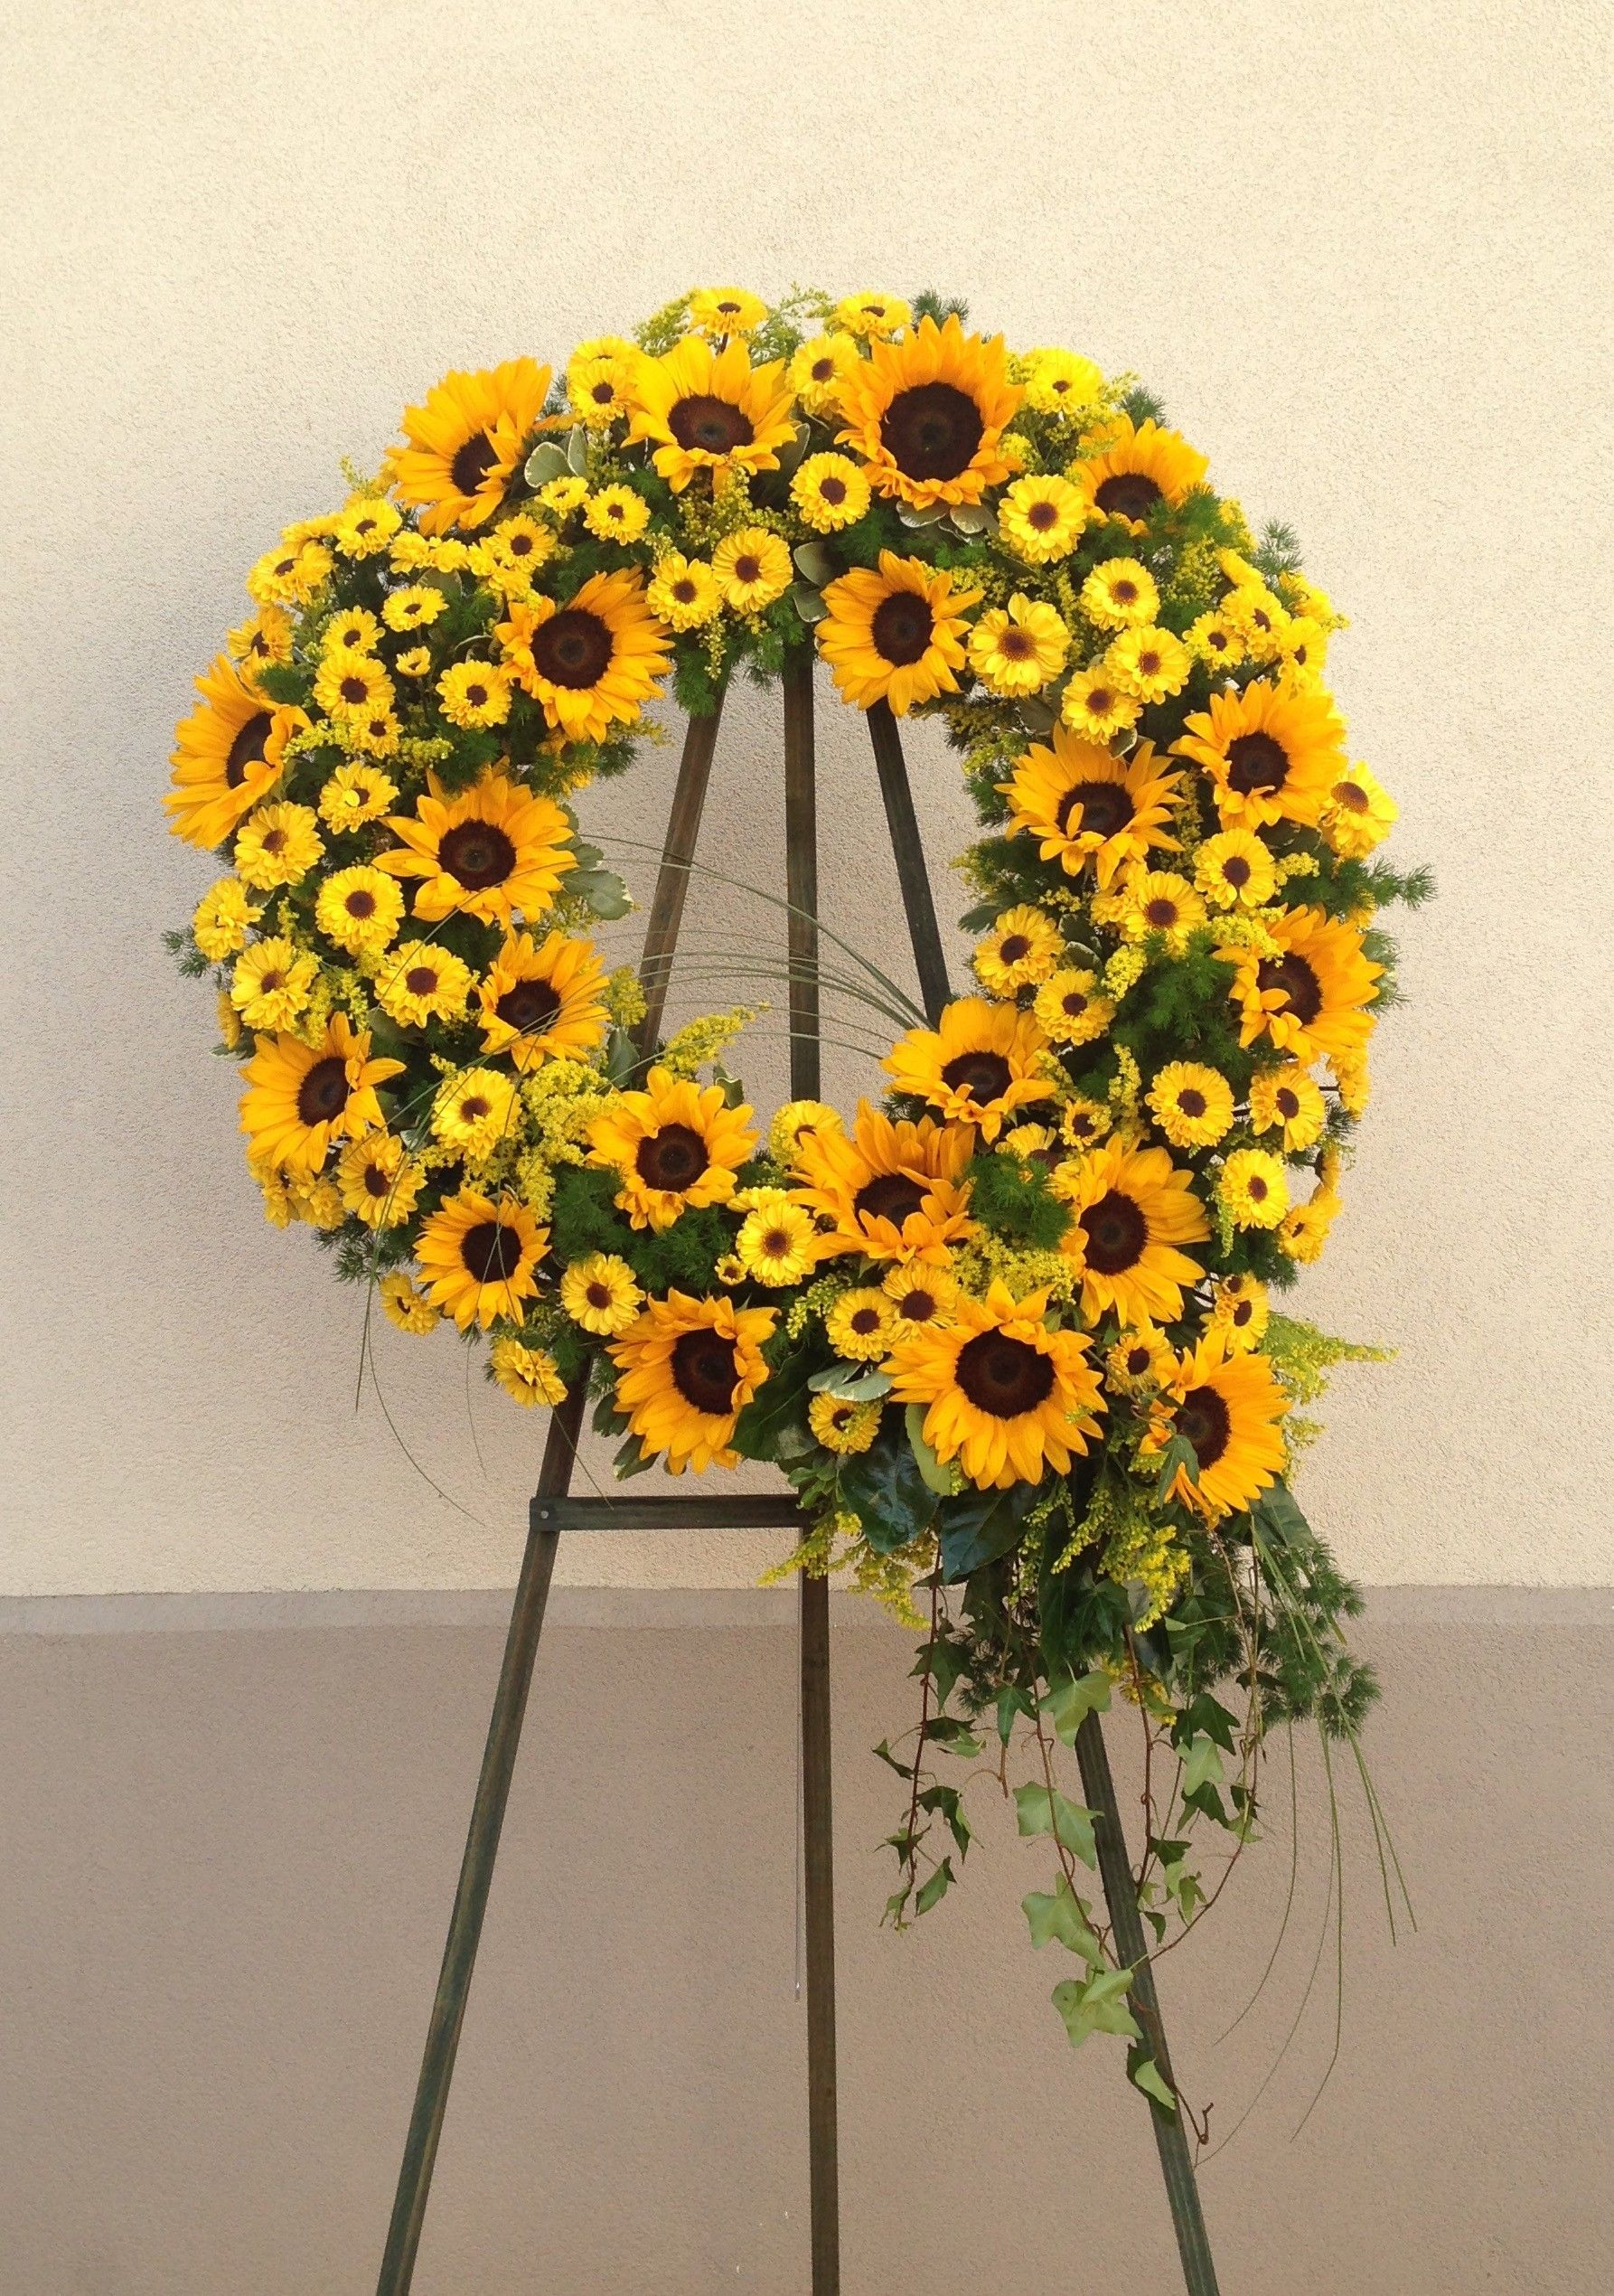 Radiant Sun Wreath in Santa Fe Springs, CA Le Fleur